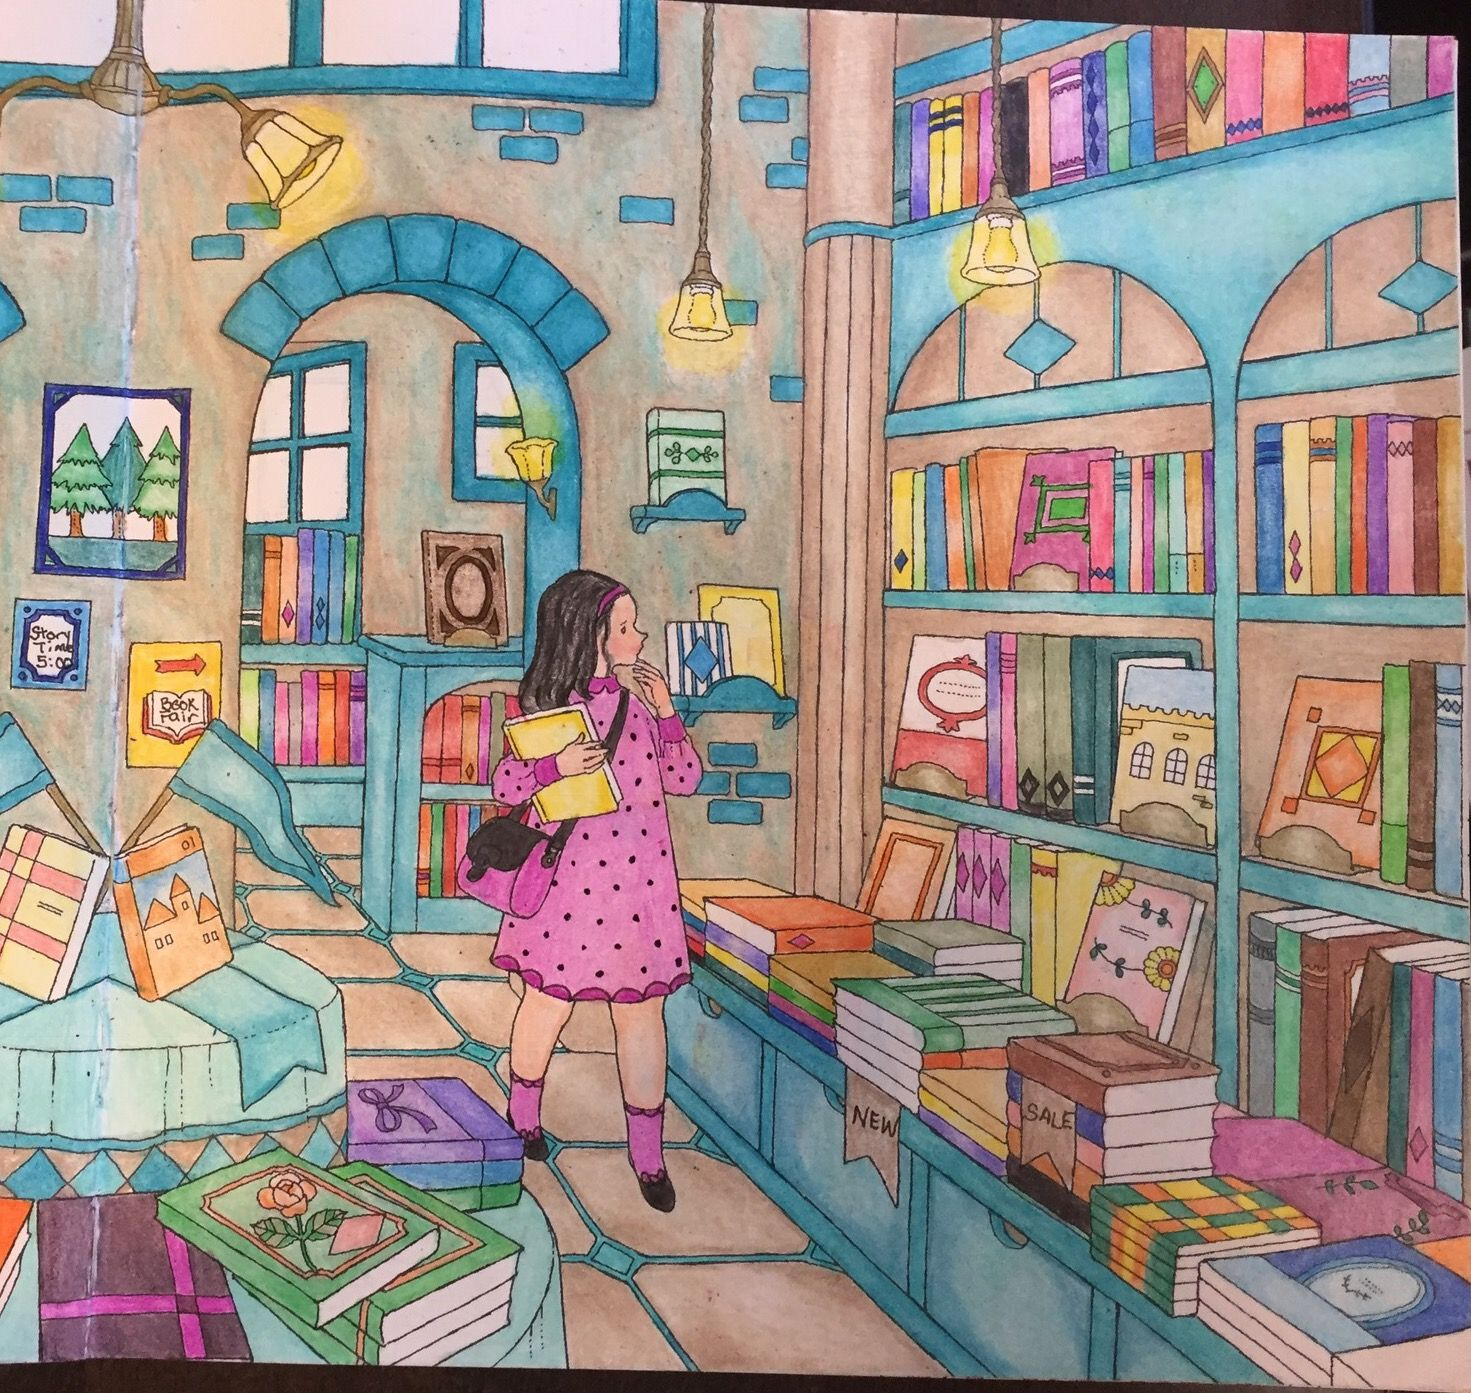 my colorful town by chiaki ida right page of outside of bakery